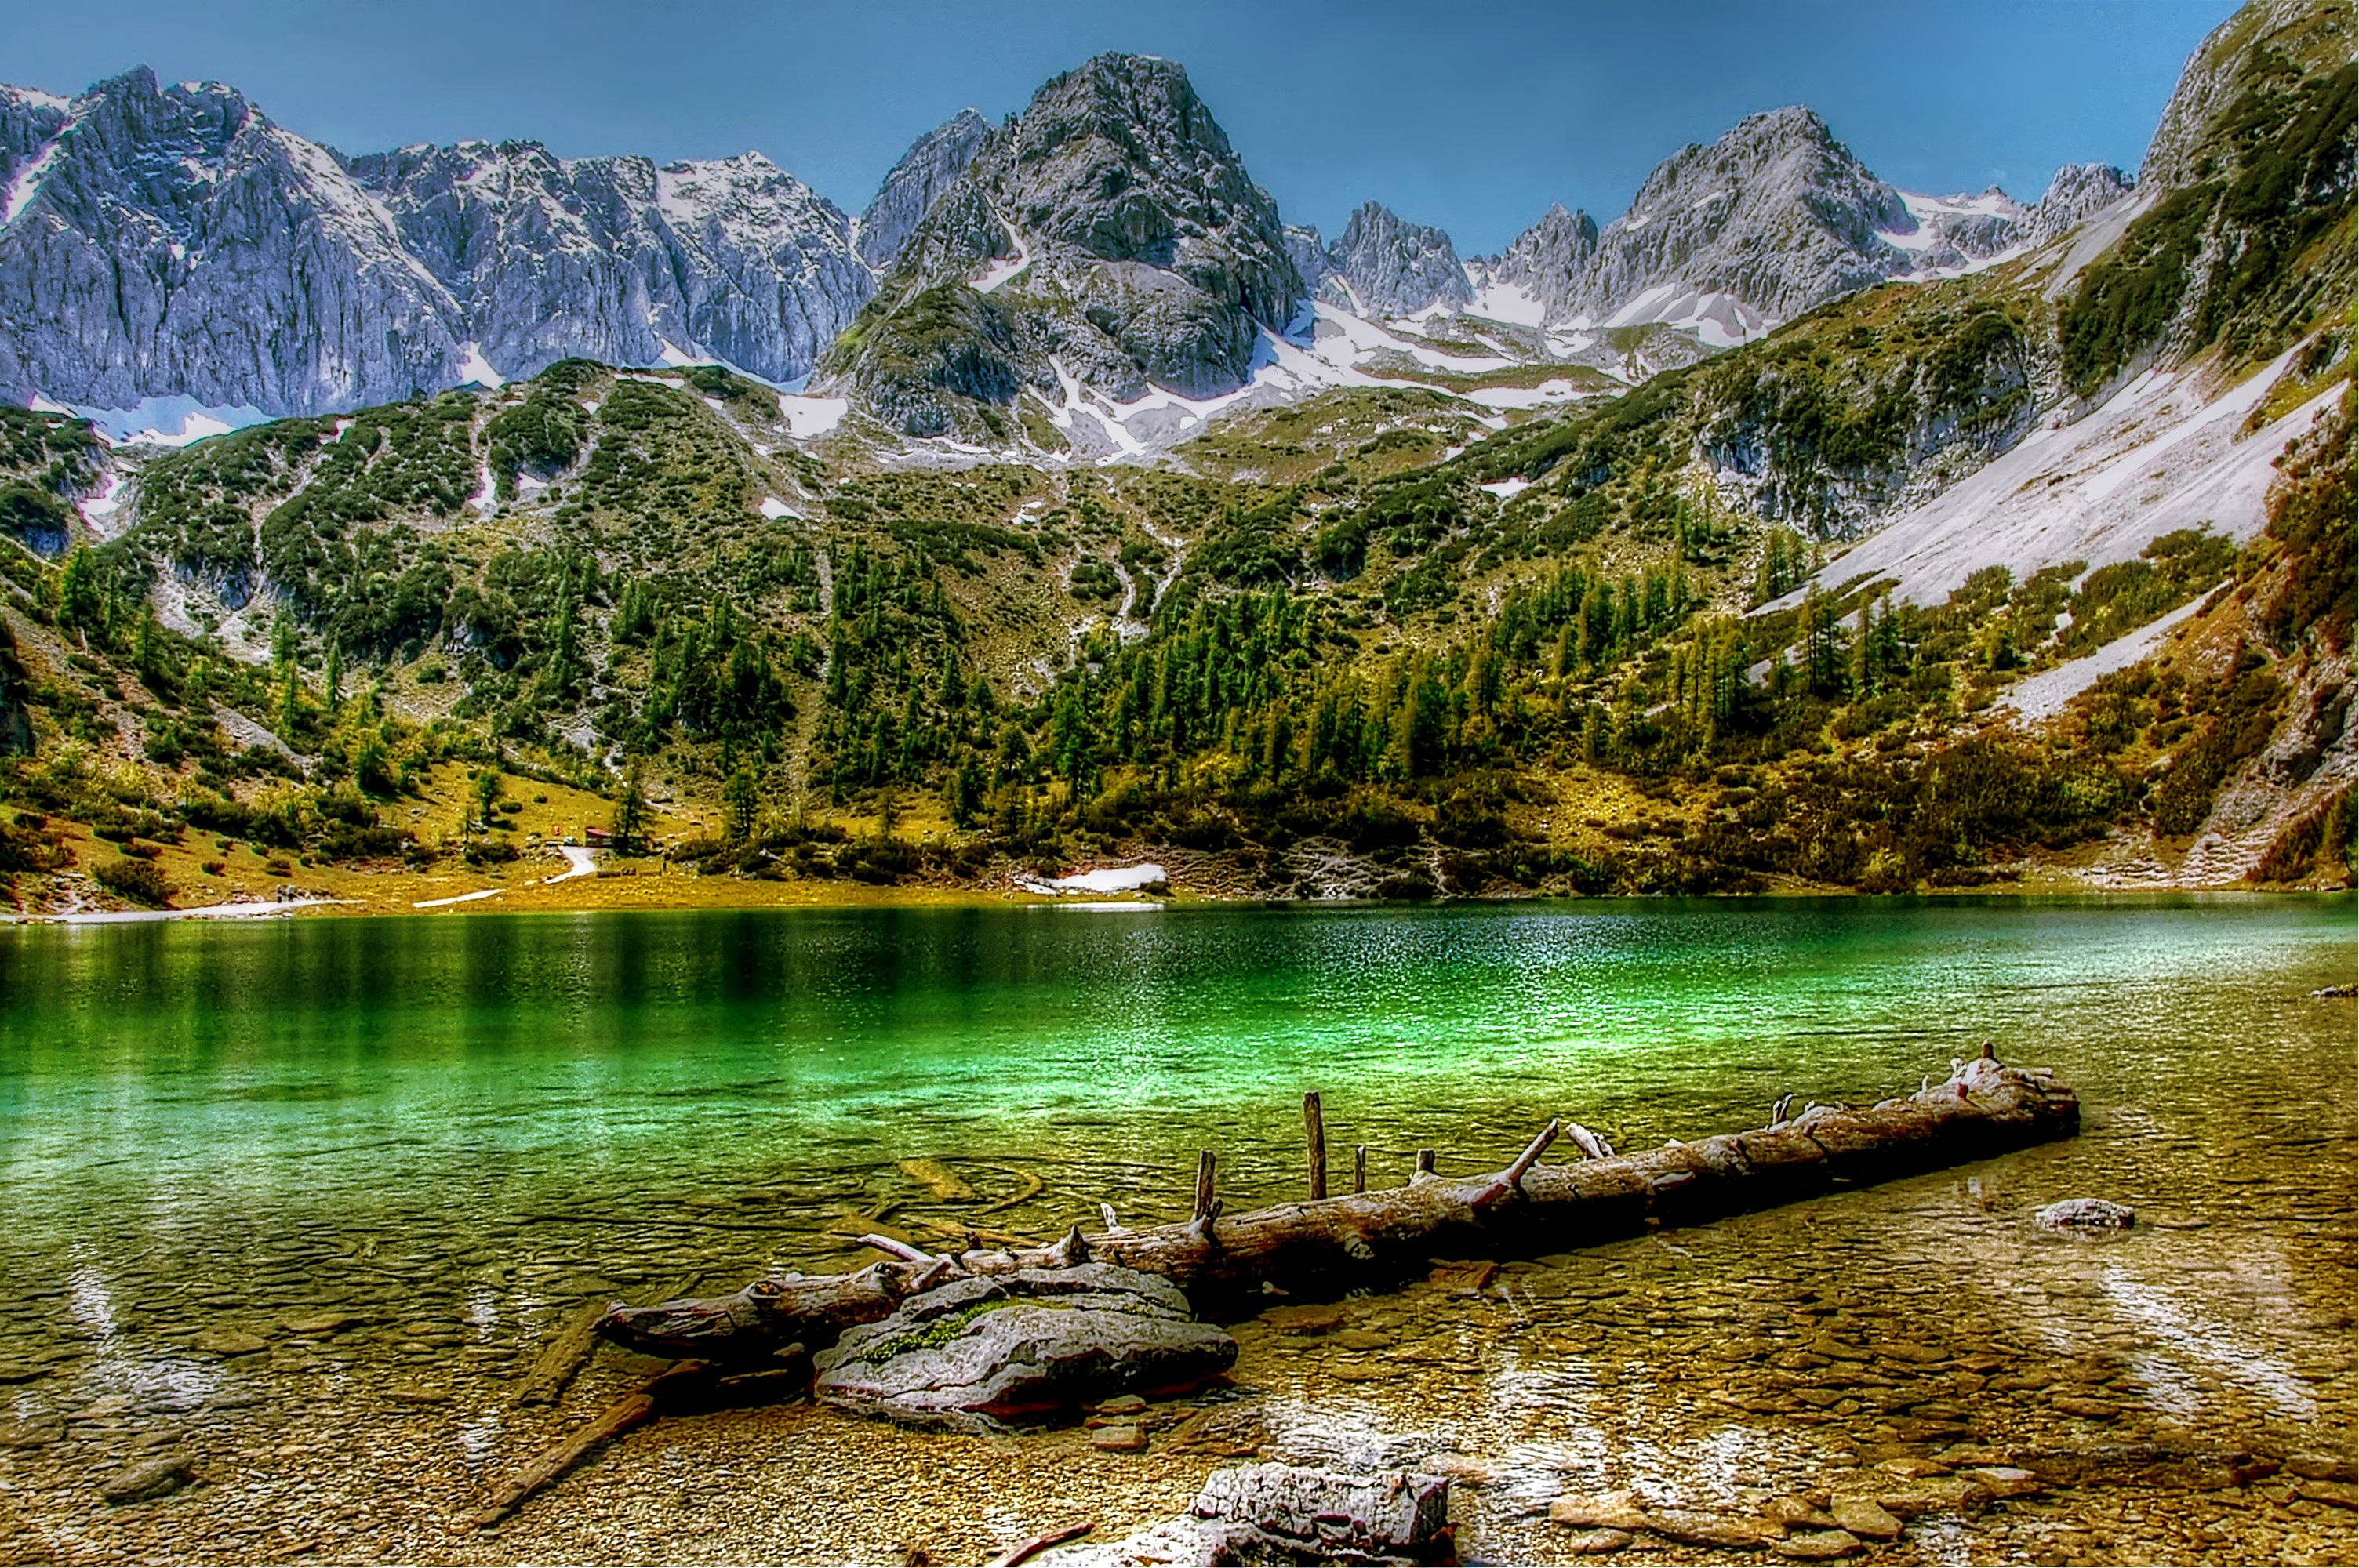 Body of Water and Mountains